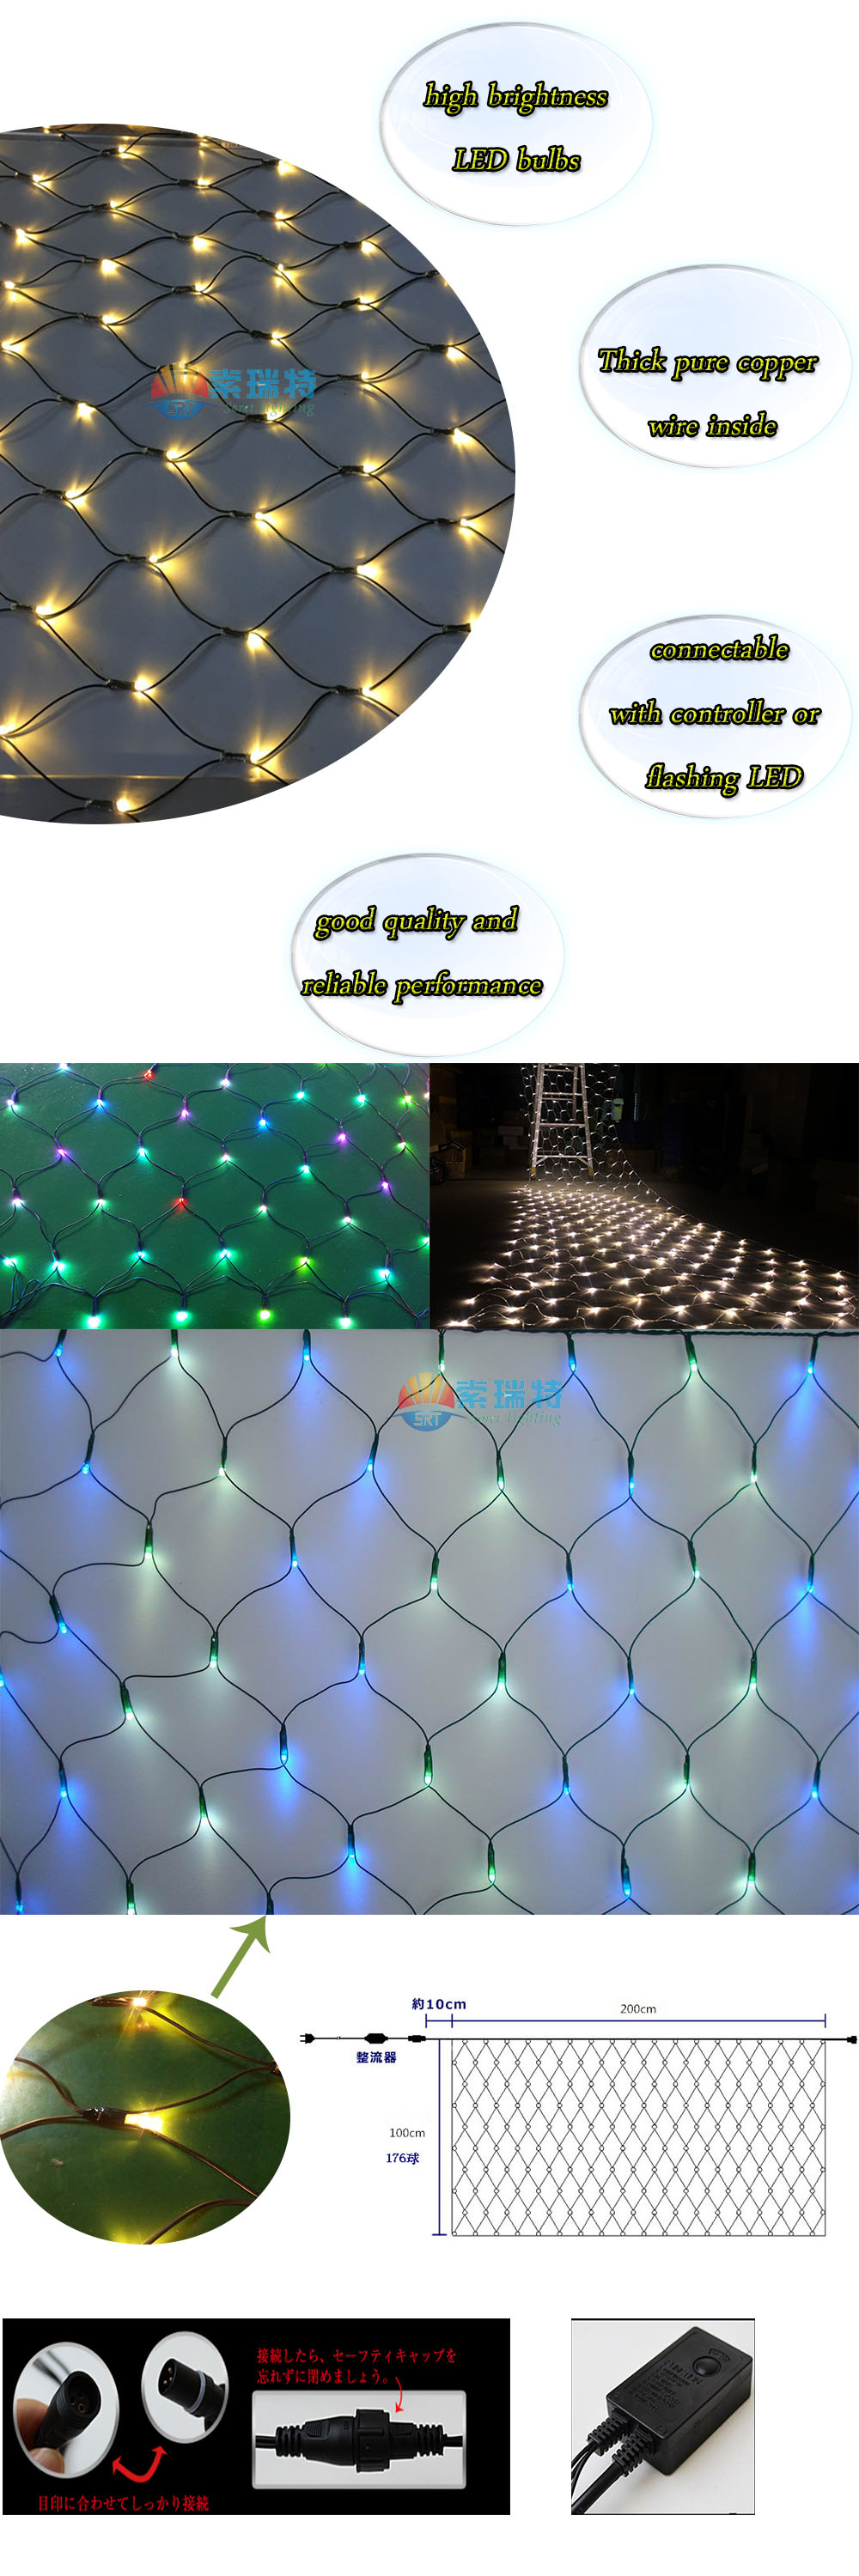 Led Programmable Net Light With Controller Buy Flashers